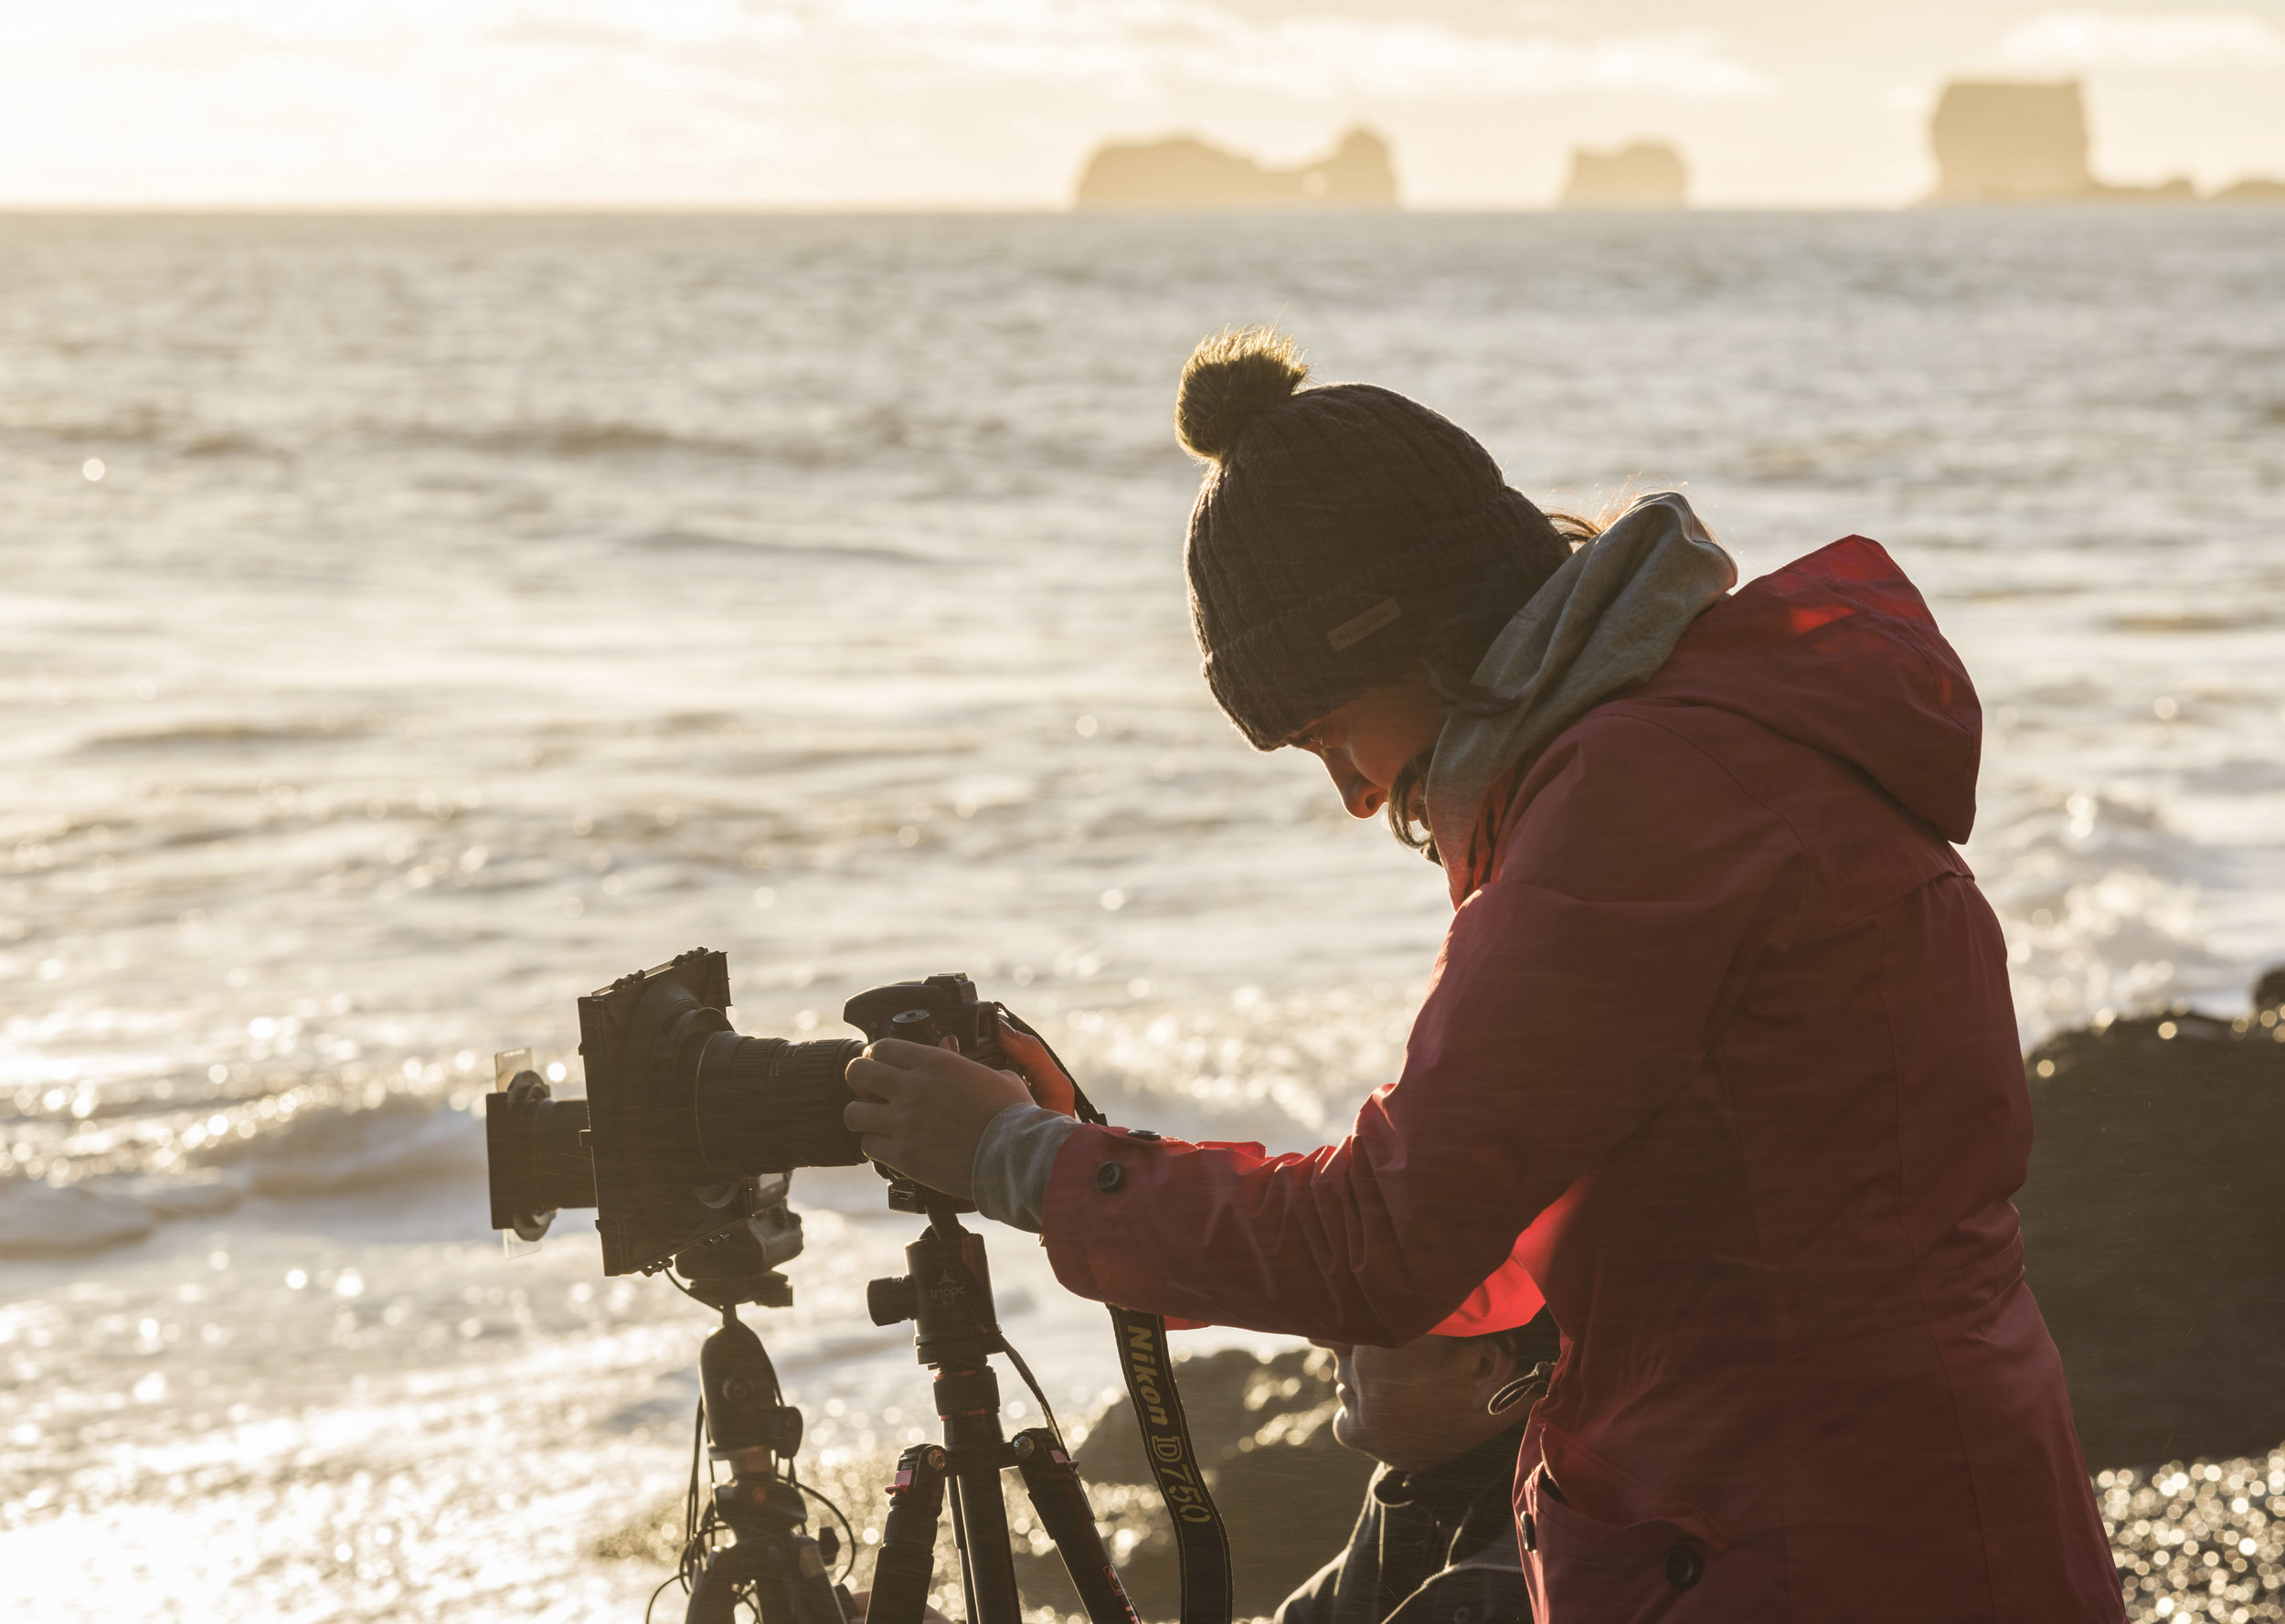 What we teach during our landscape photography workshops